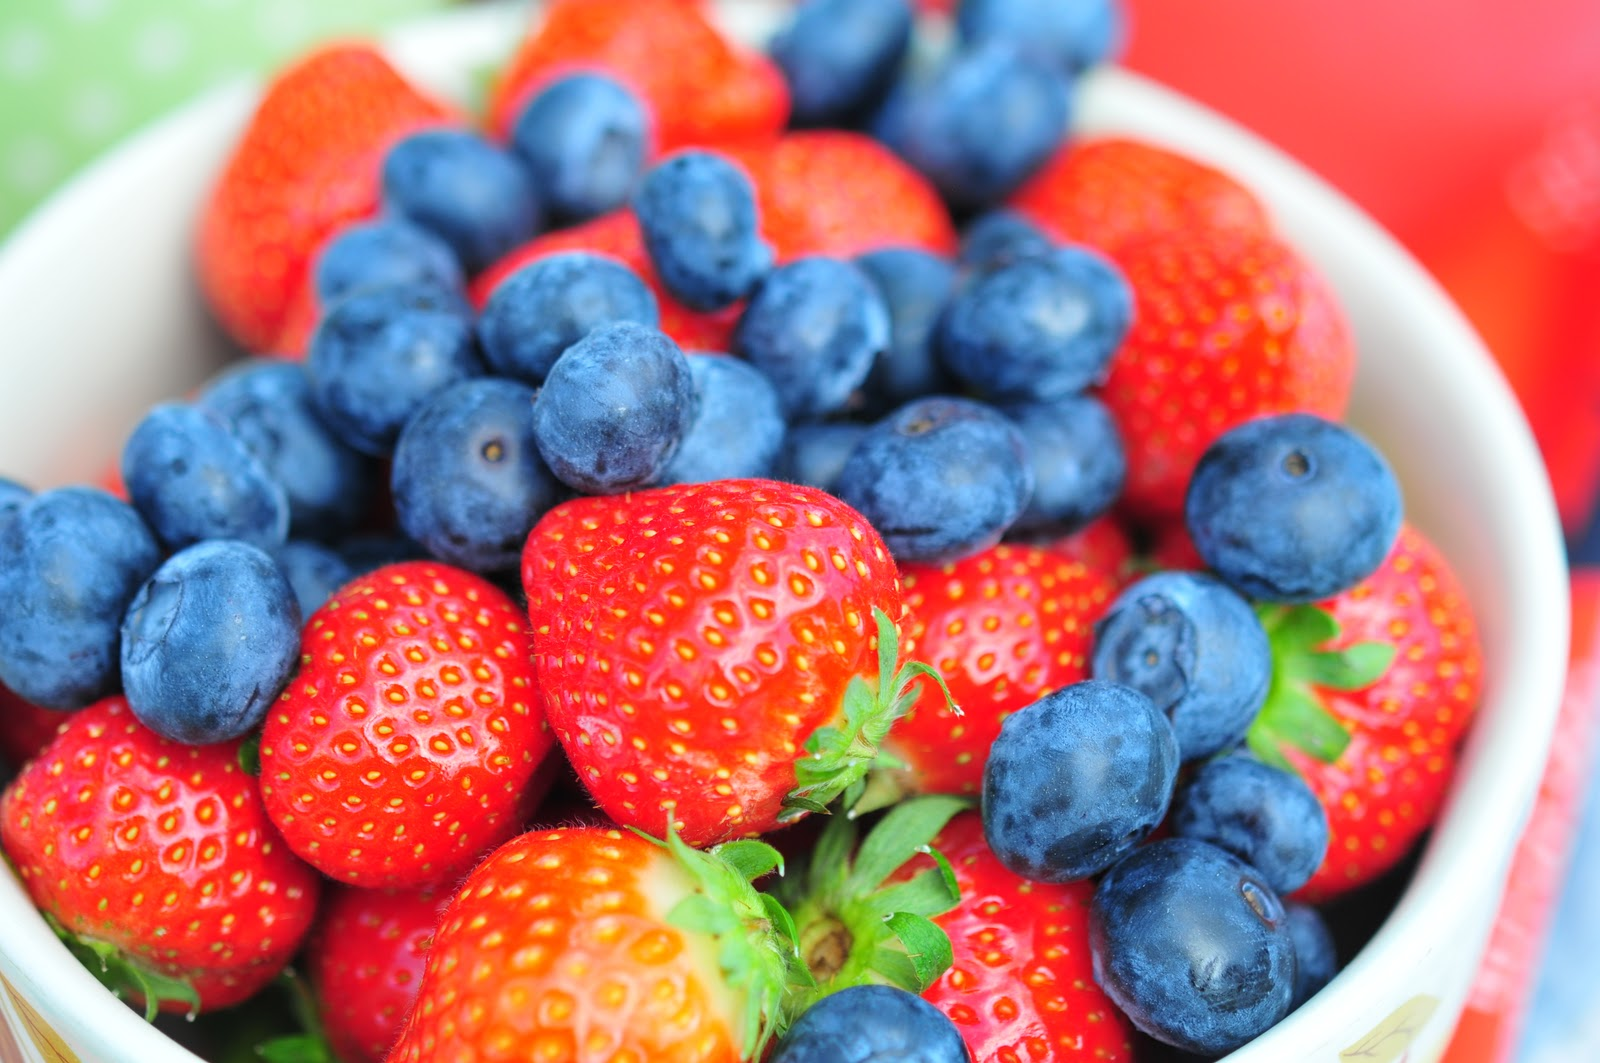 Strawberries-Blueberries-promote-heart-health